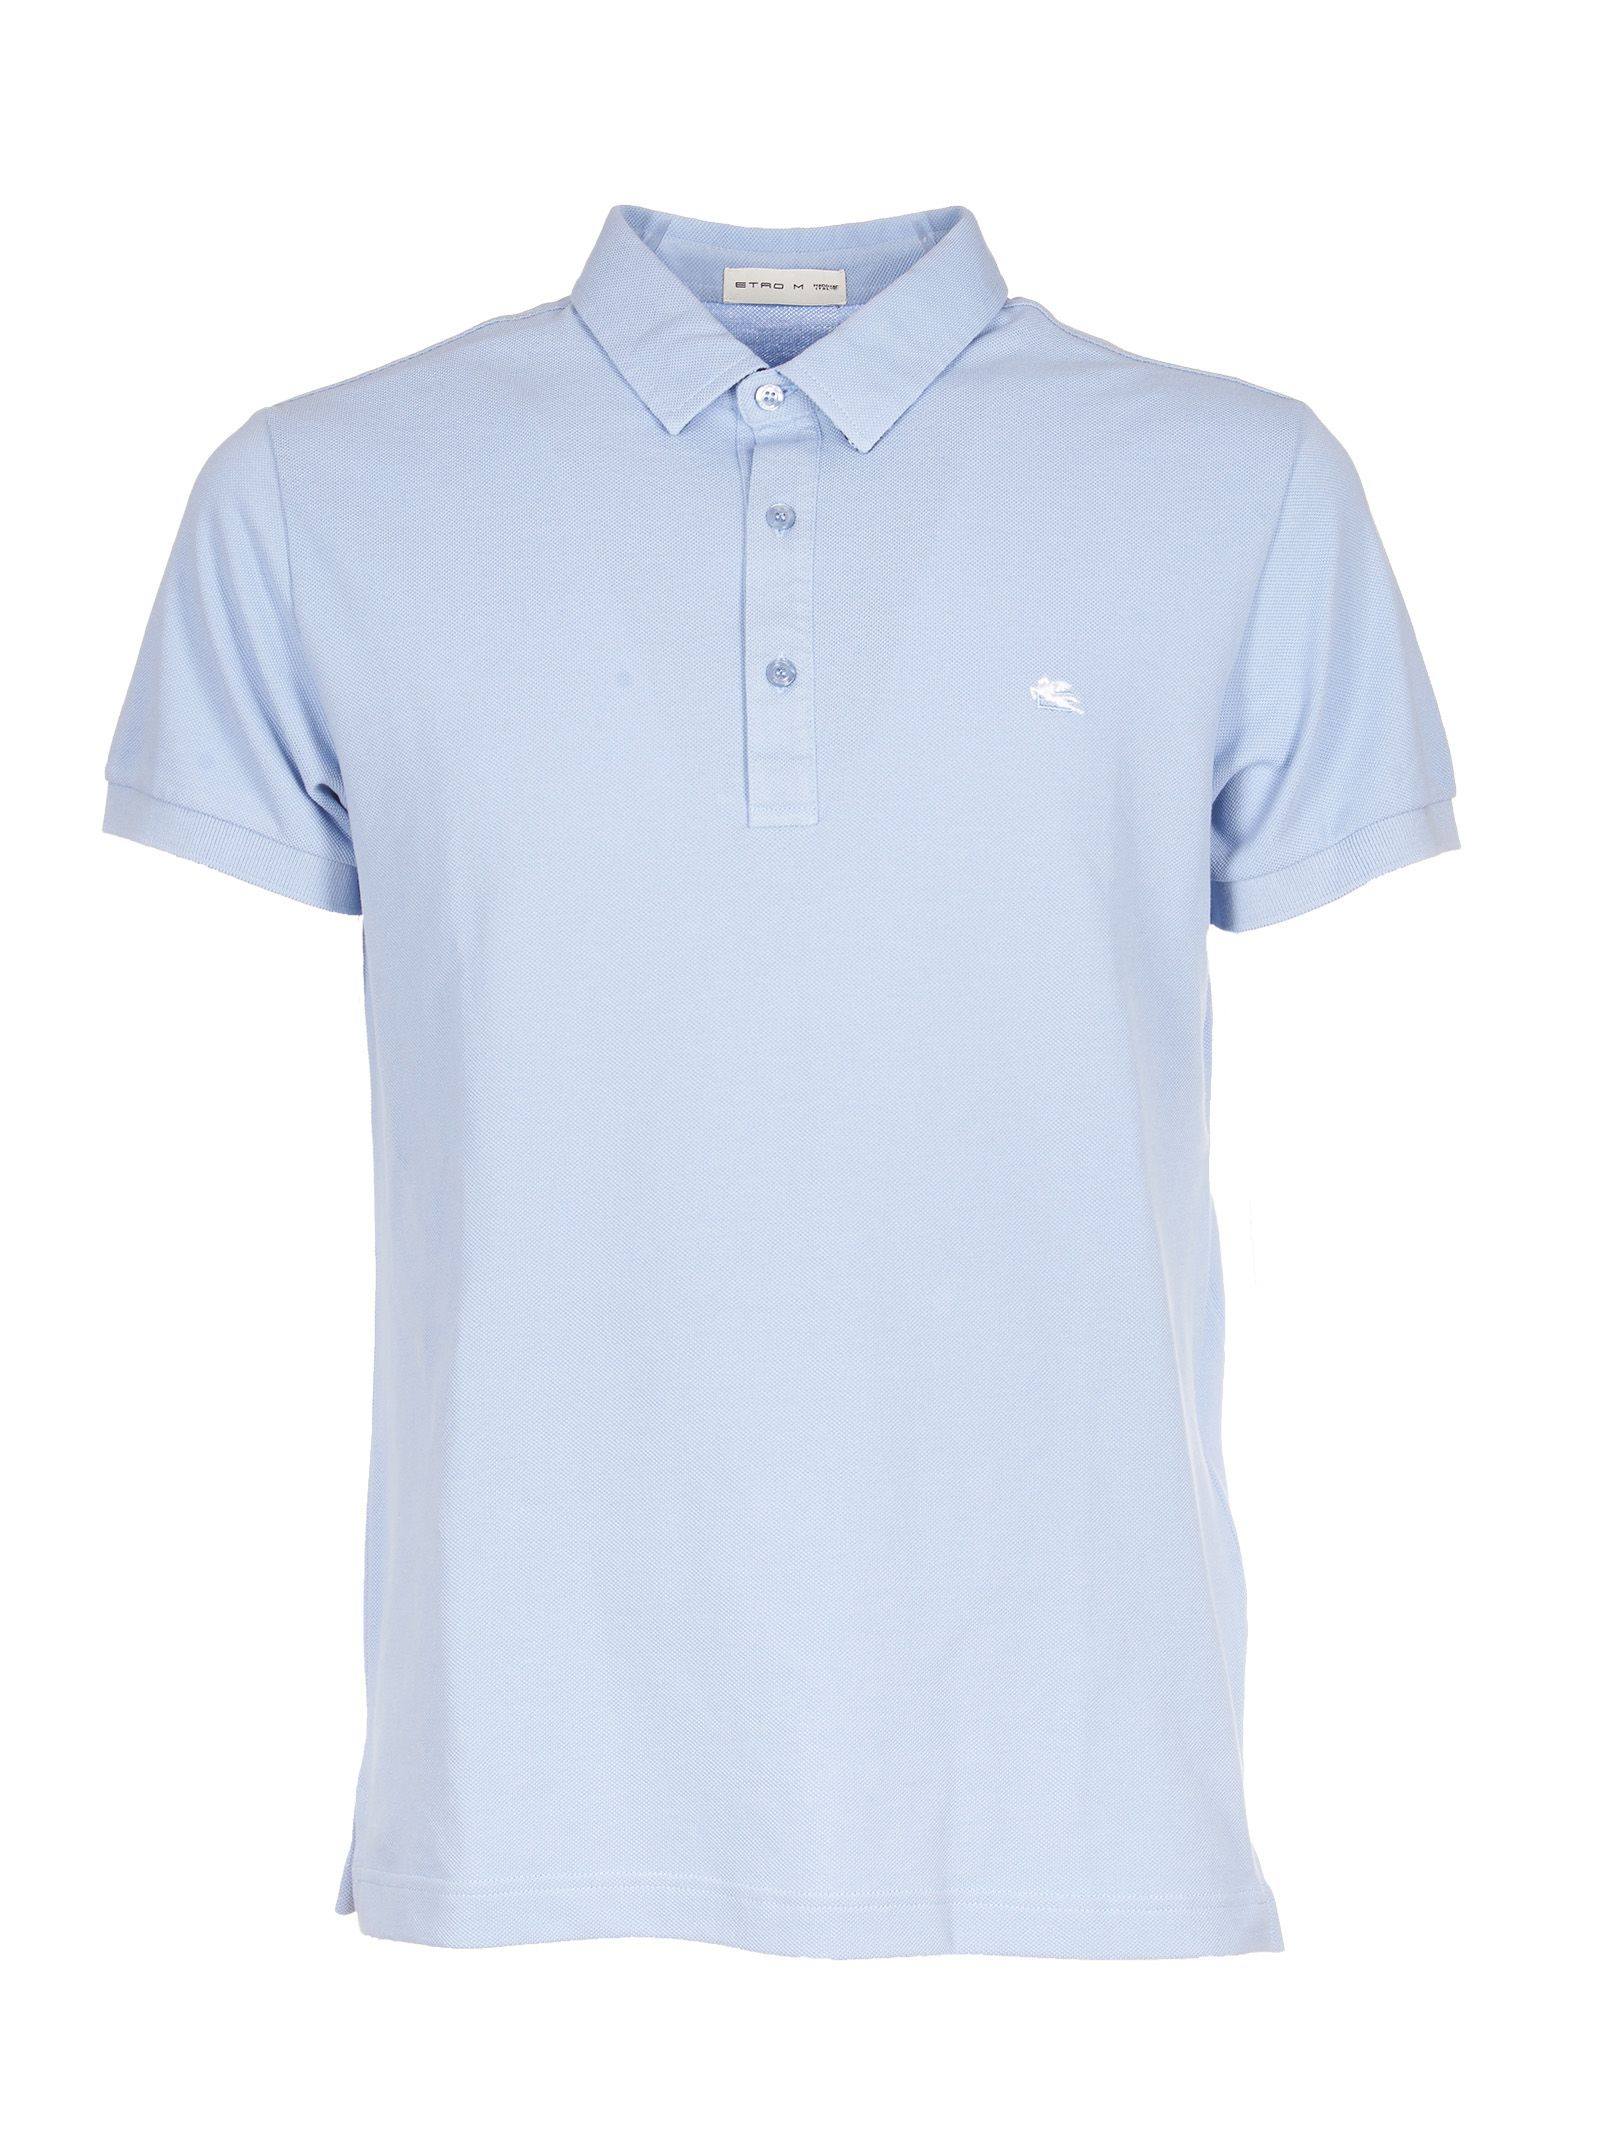 Etro Embroidered Polo Shirt